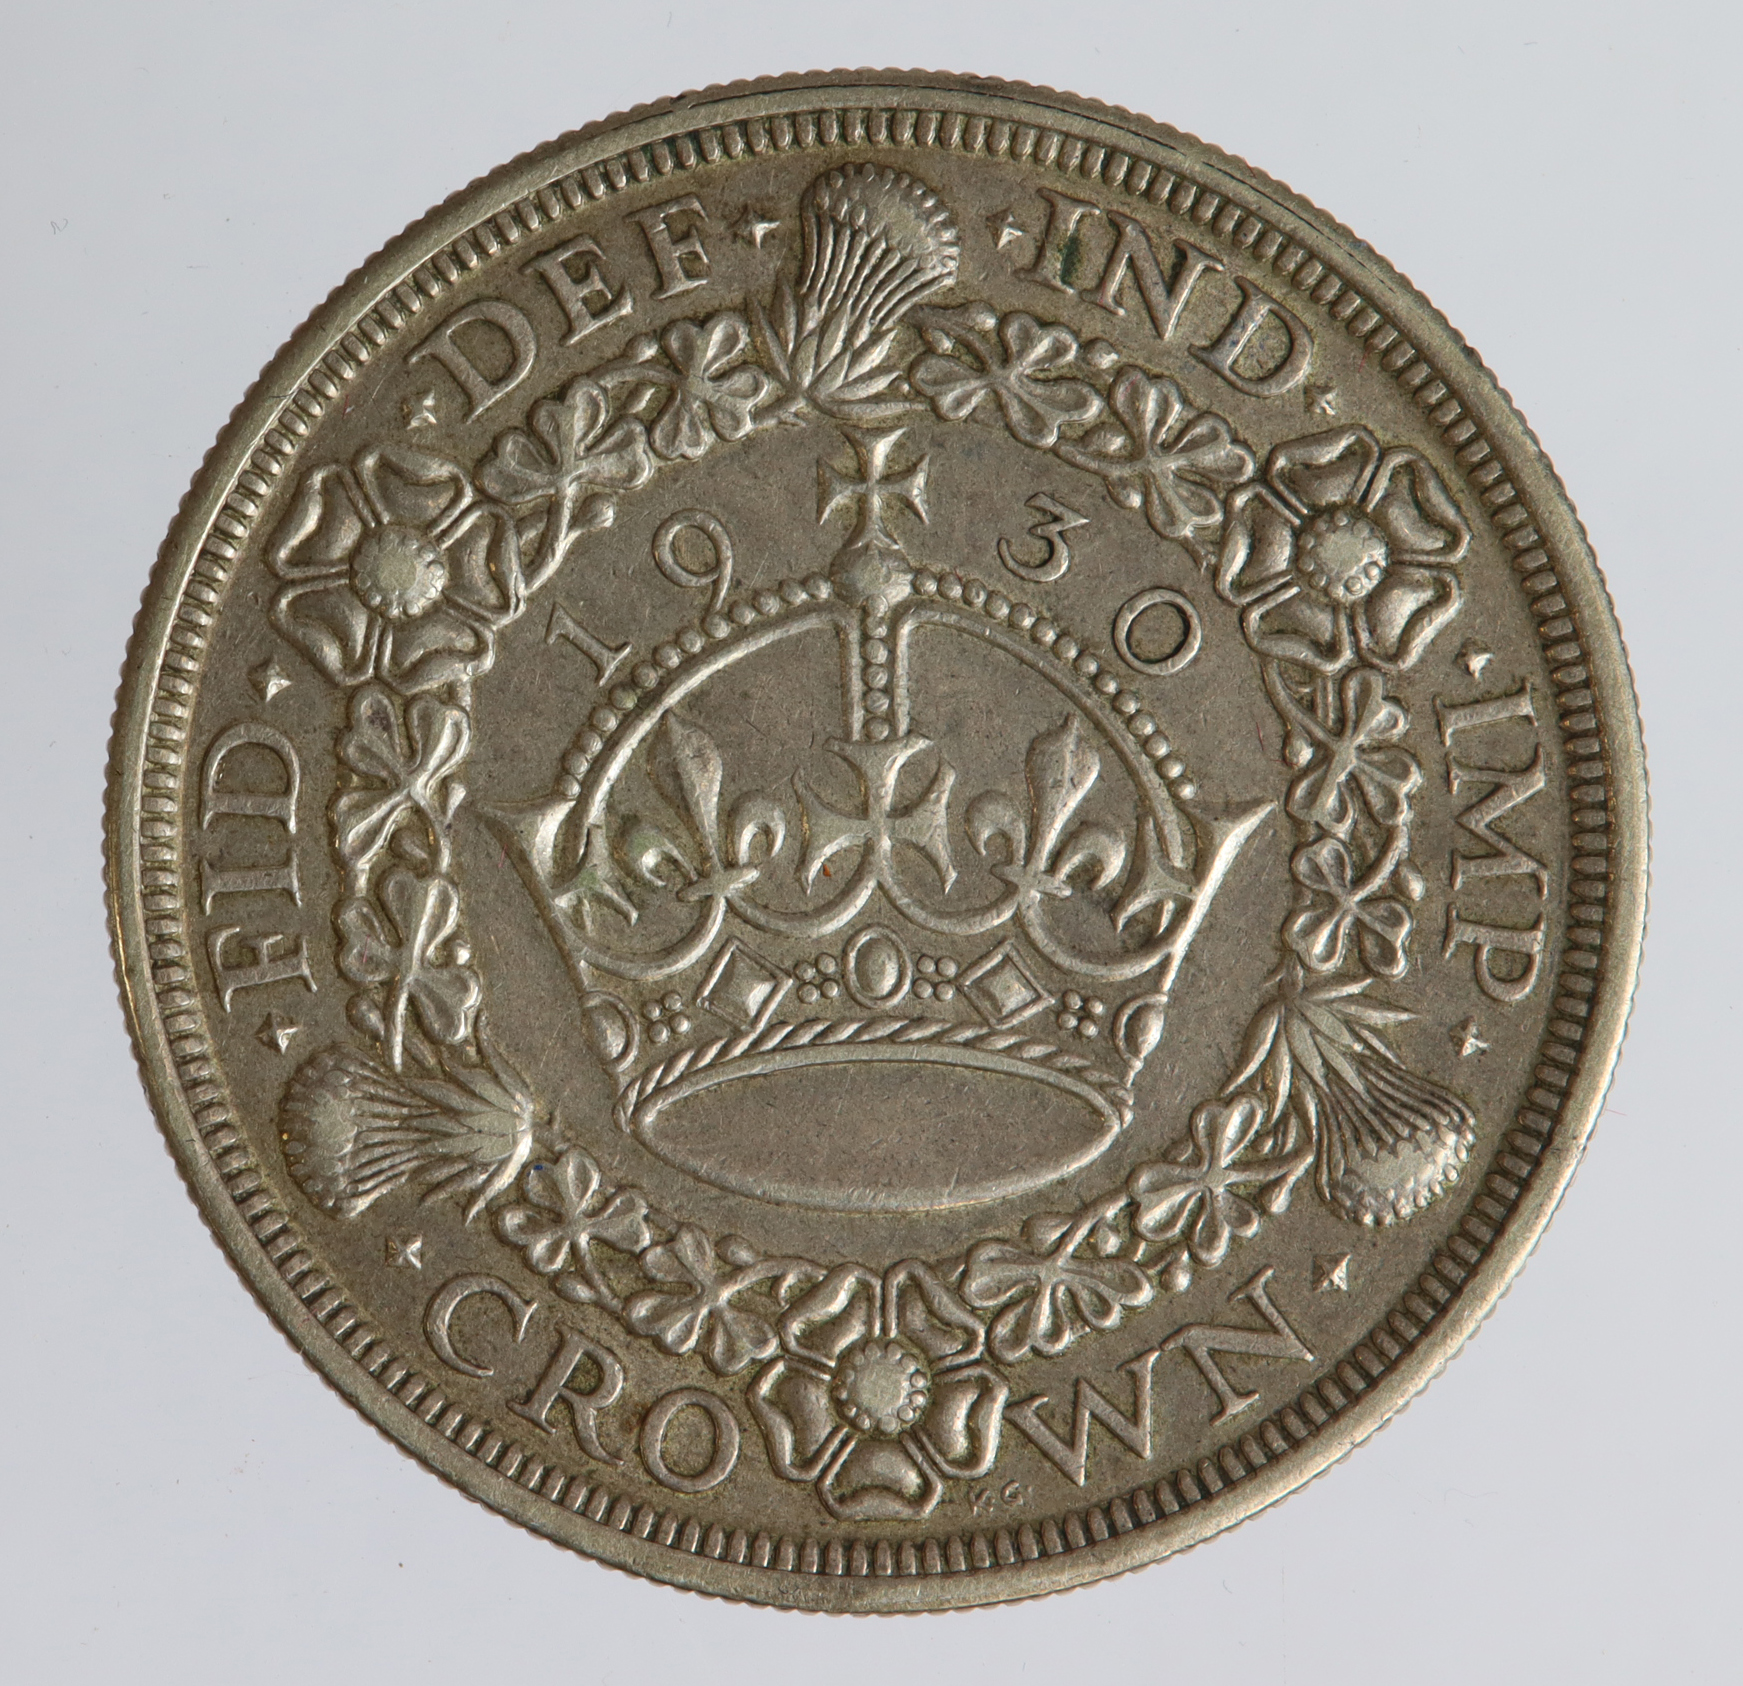 Crown 1930 wreath, VF - Image 2 of 2